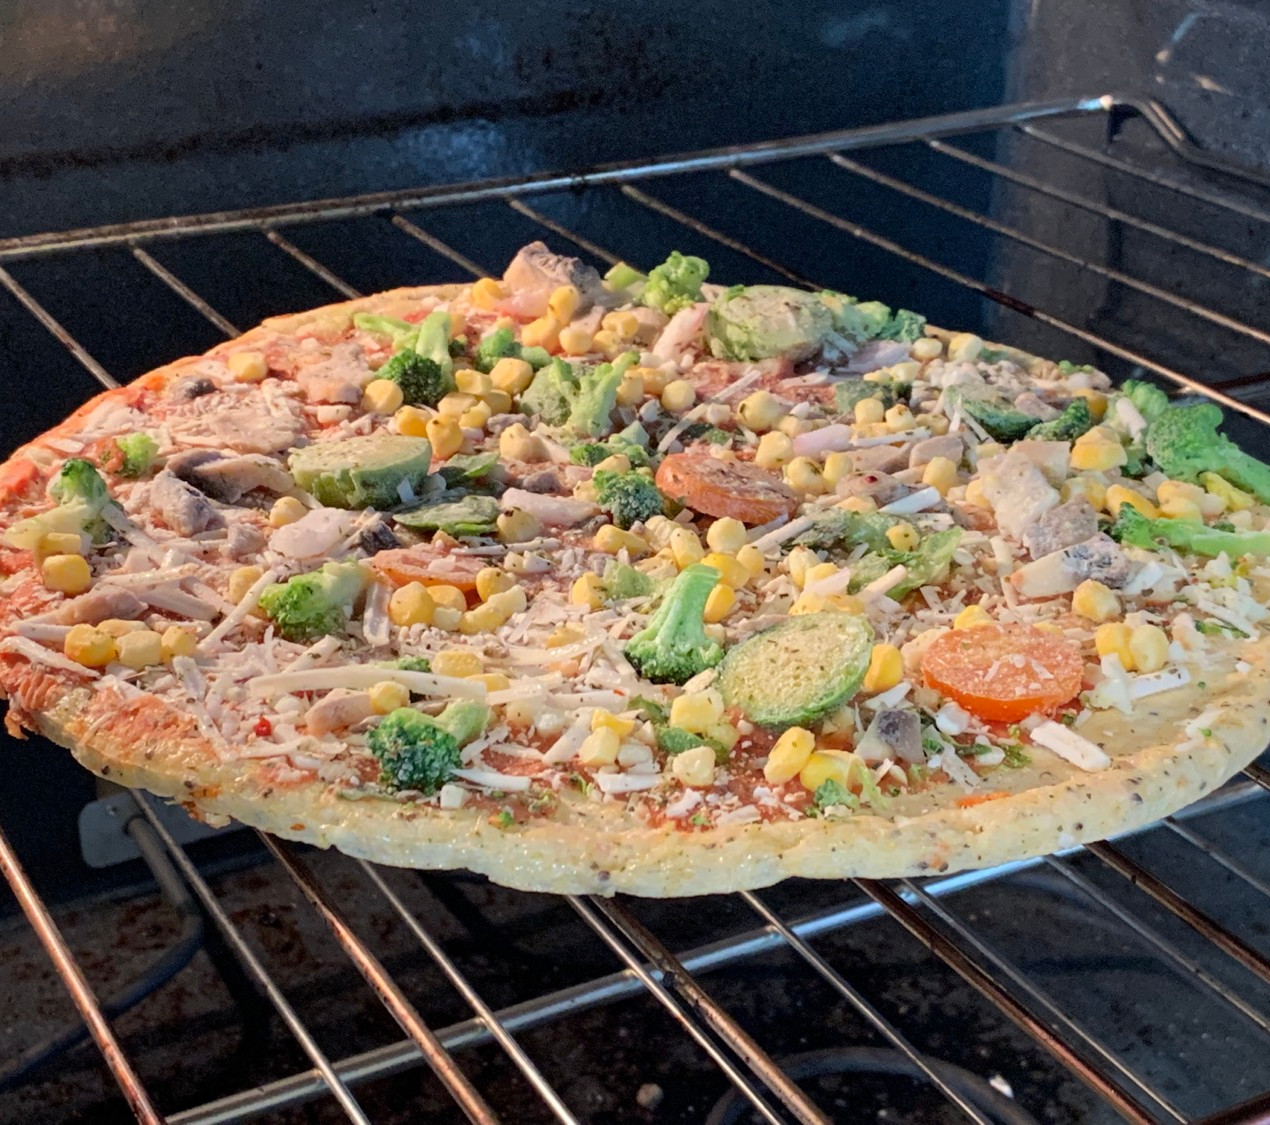 frozen veggie pizza cooking right on the oven rack